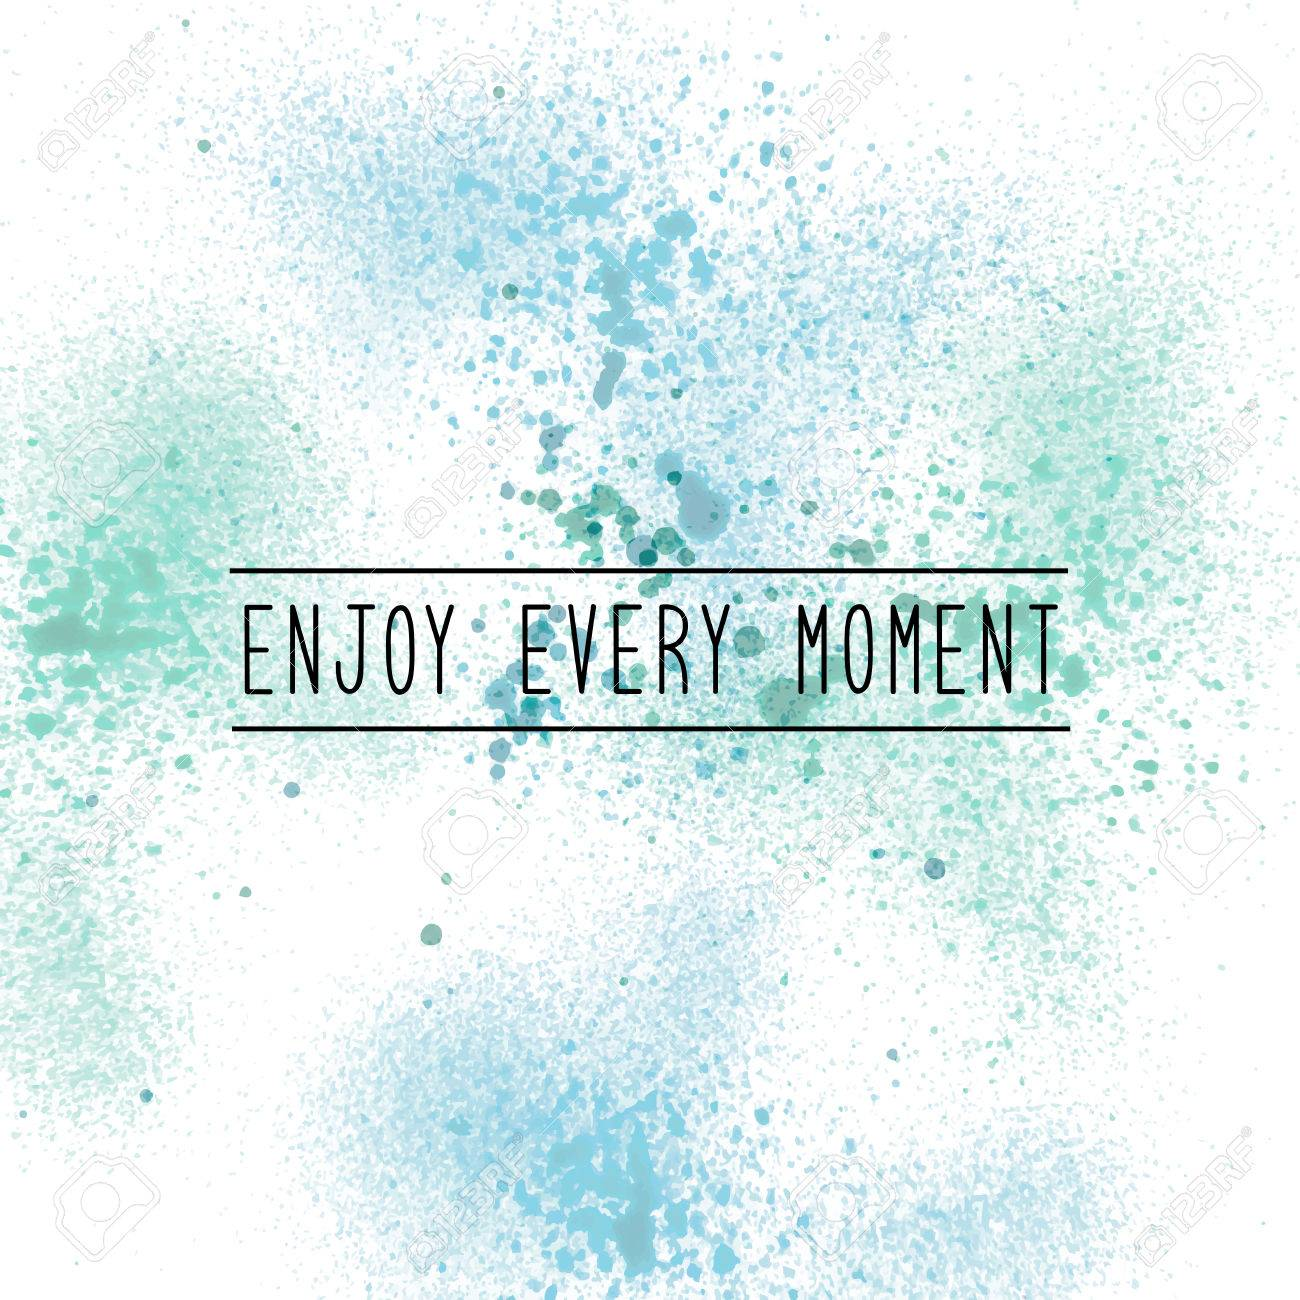 Enjoy Every Moment Inspirational Quote On Spray Paint Background 1300x1300